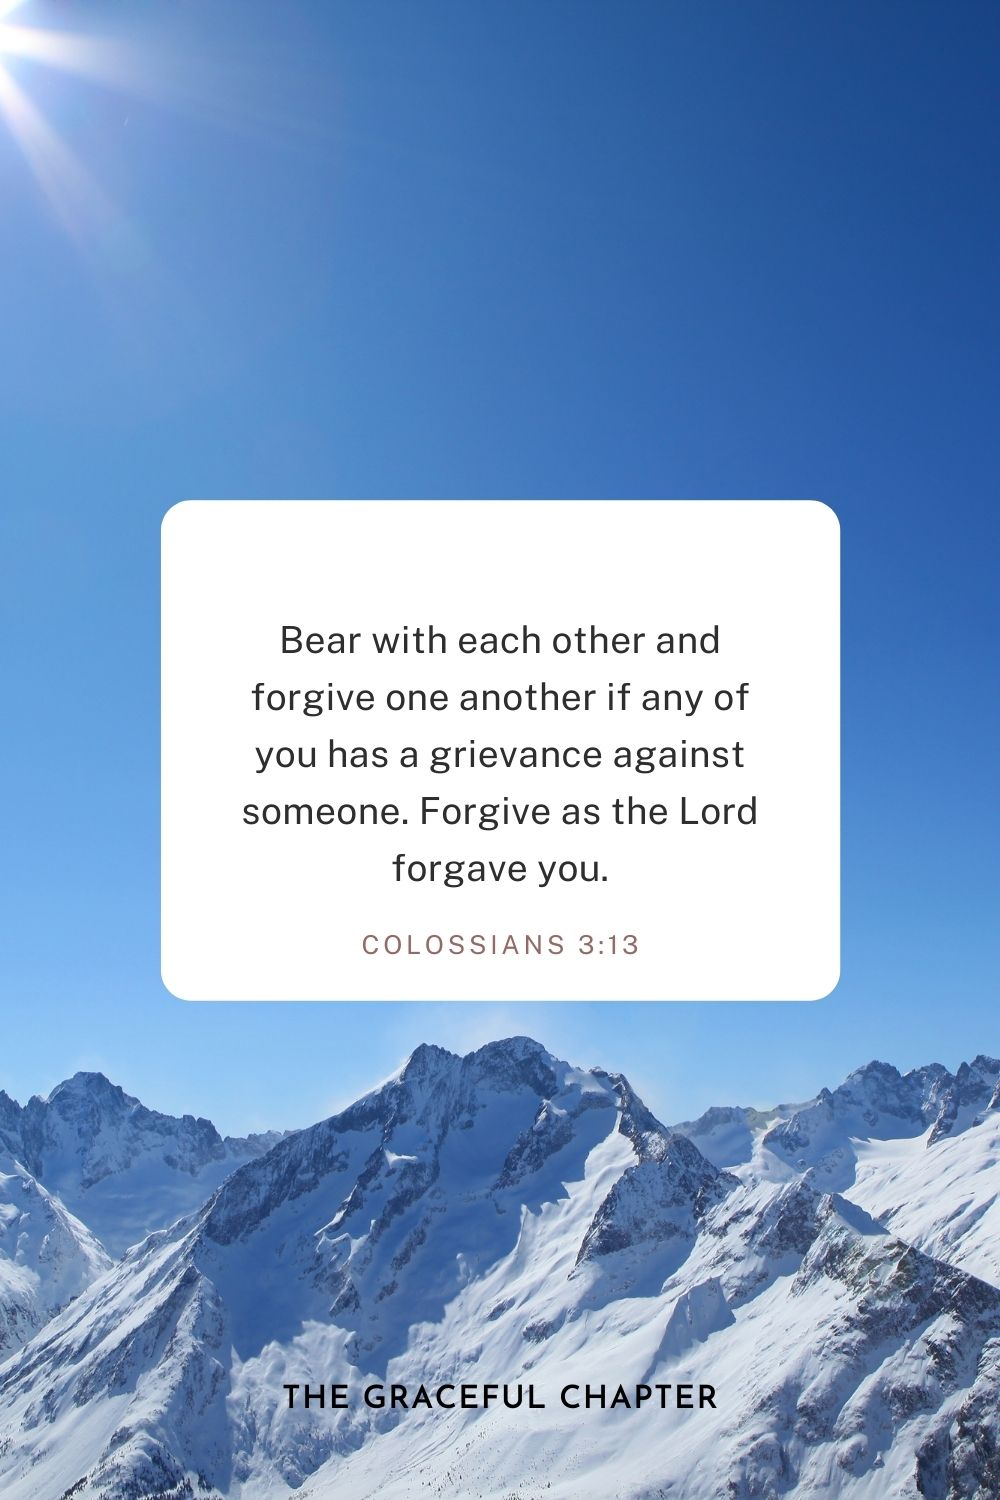 Bear with each other and forgive one another if any of you has a grievance against someone. Forgive as the Lord forgave you. Colossians 3:13